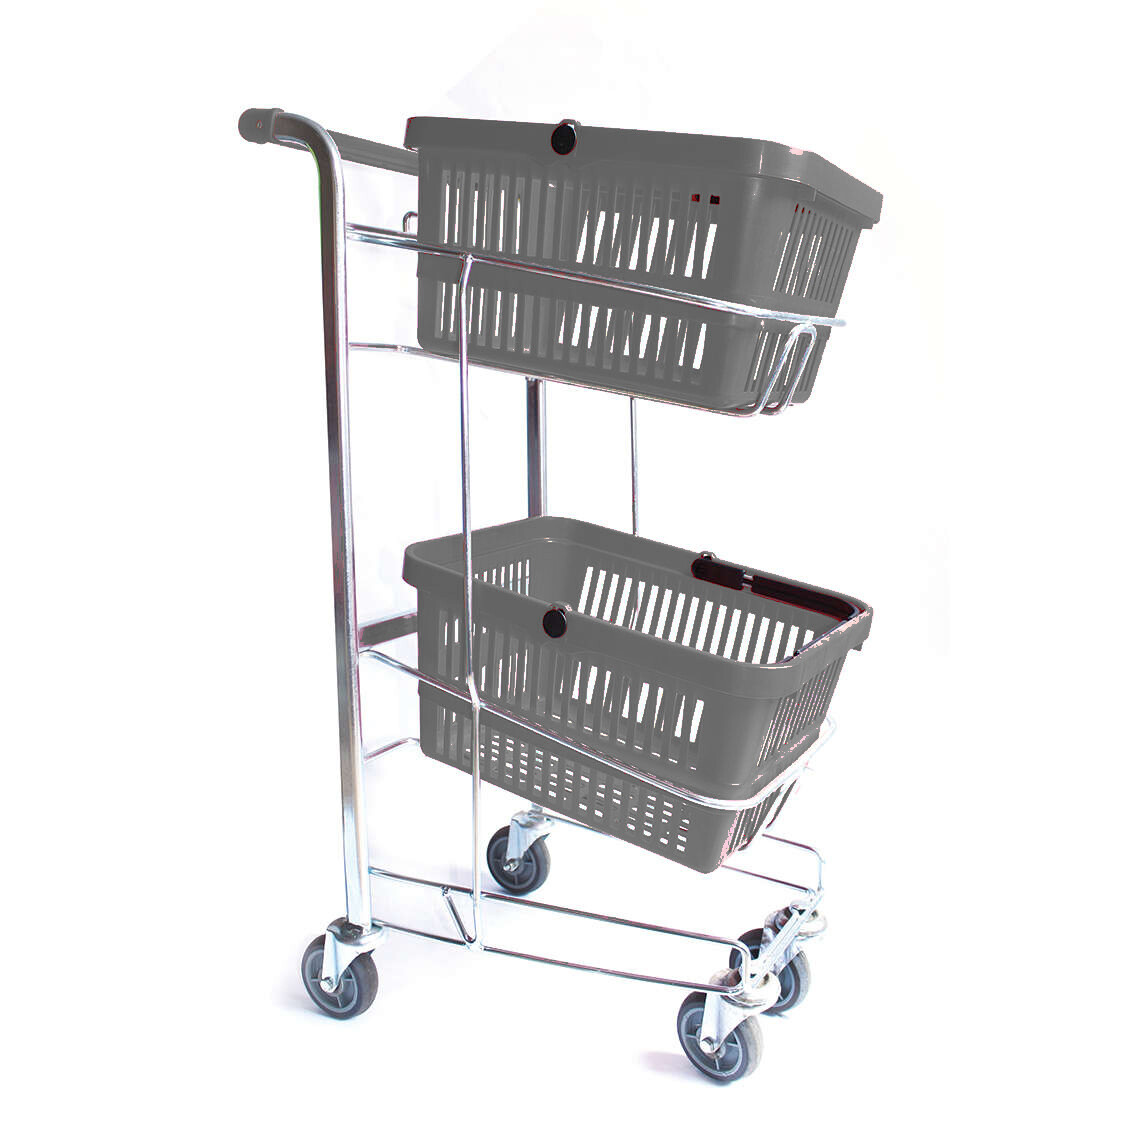 HAND BASKET TROLLEY GREY 2 TIER